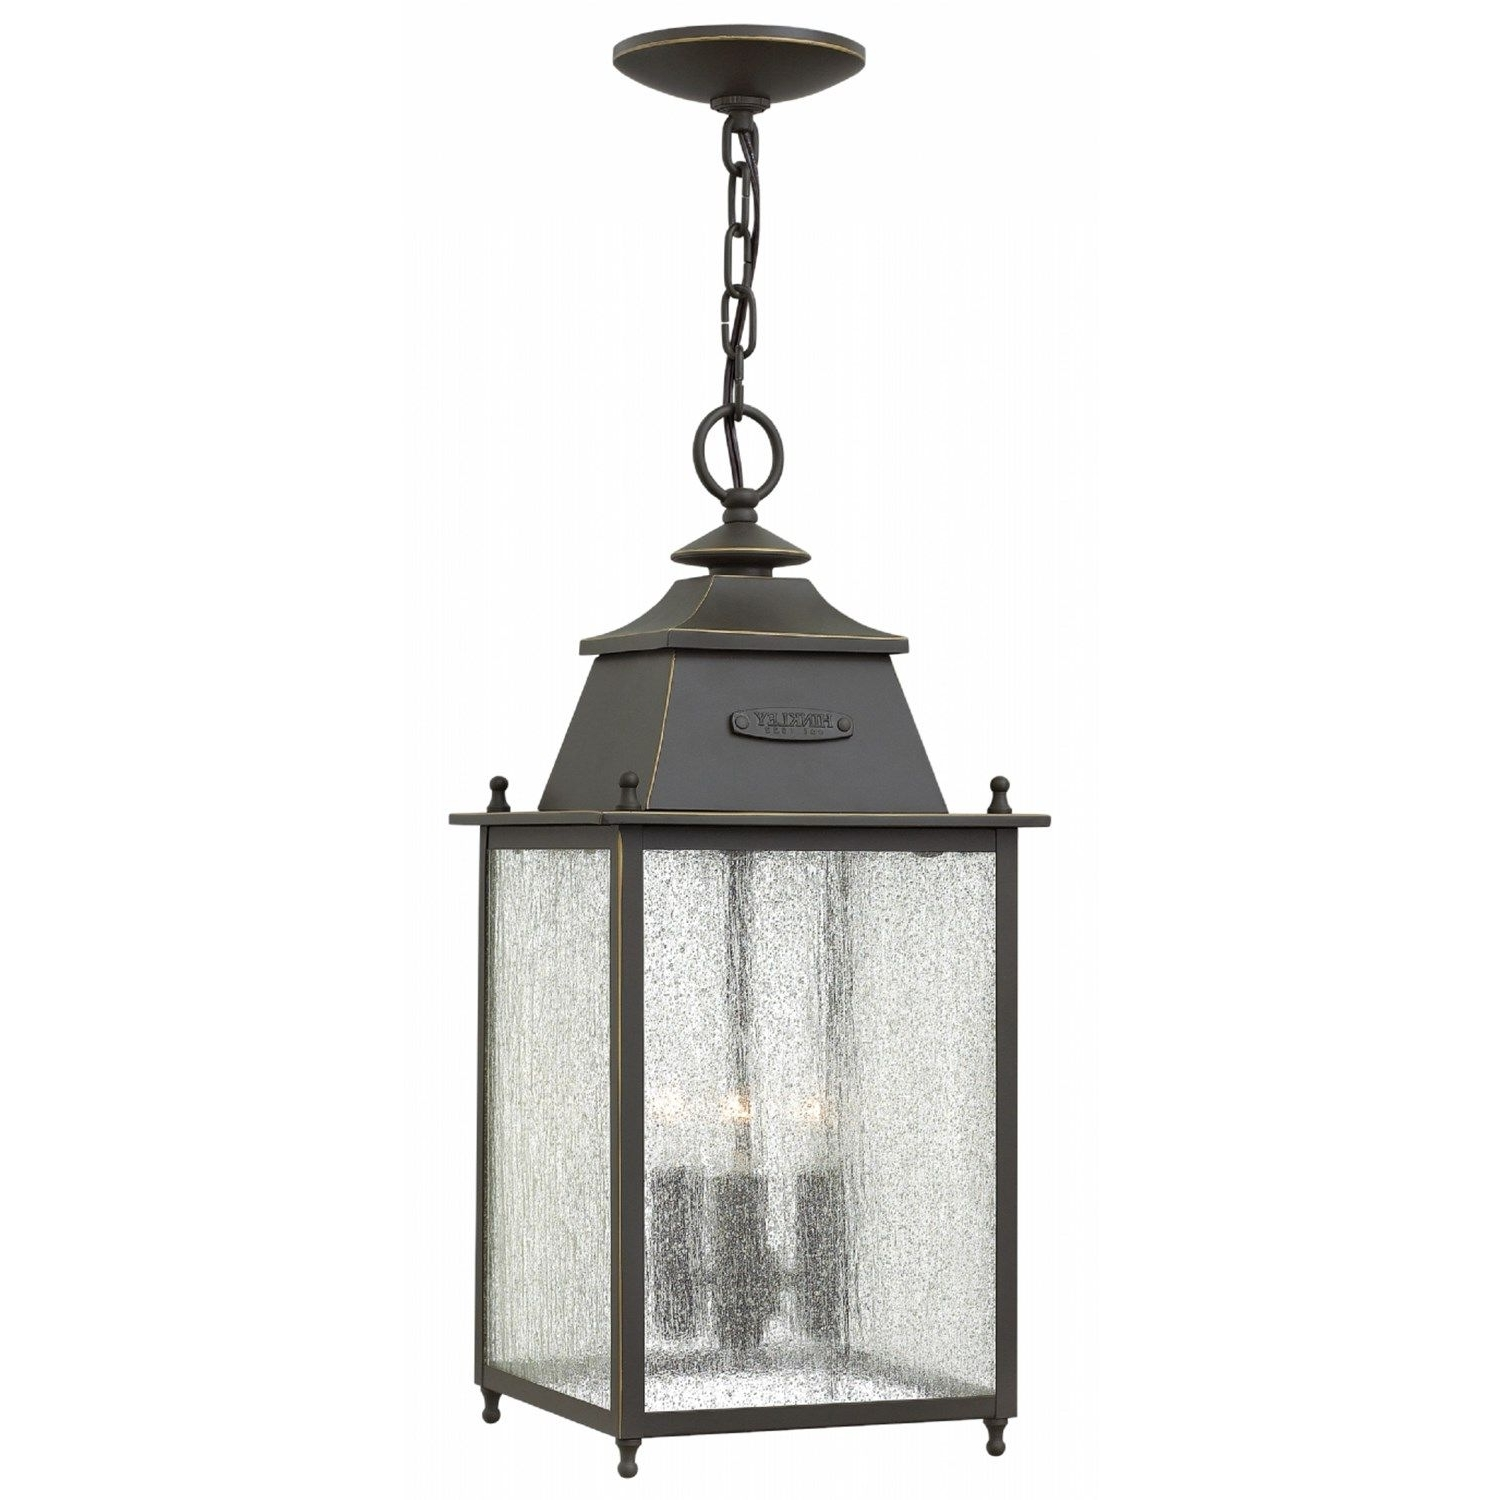 Hanging Porch Hinkley Lighting With Regard To Trendy Hinkley Lighting 2782oz Chatfield 3 Light Outdoor Hanging In Oil (View 7 of 20)